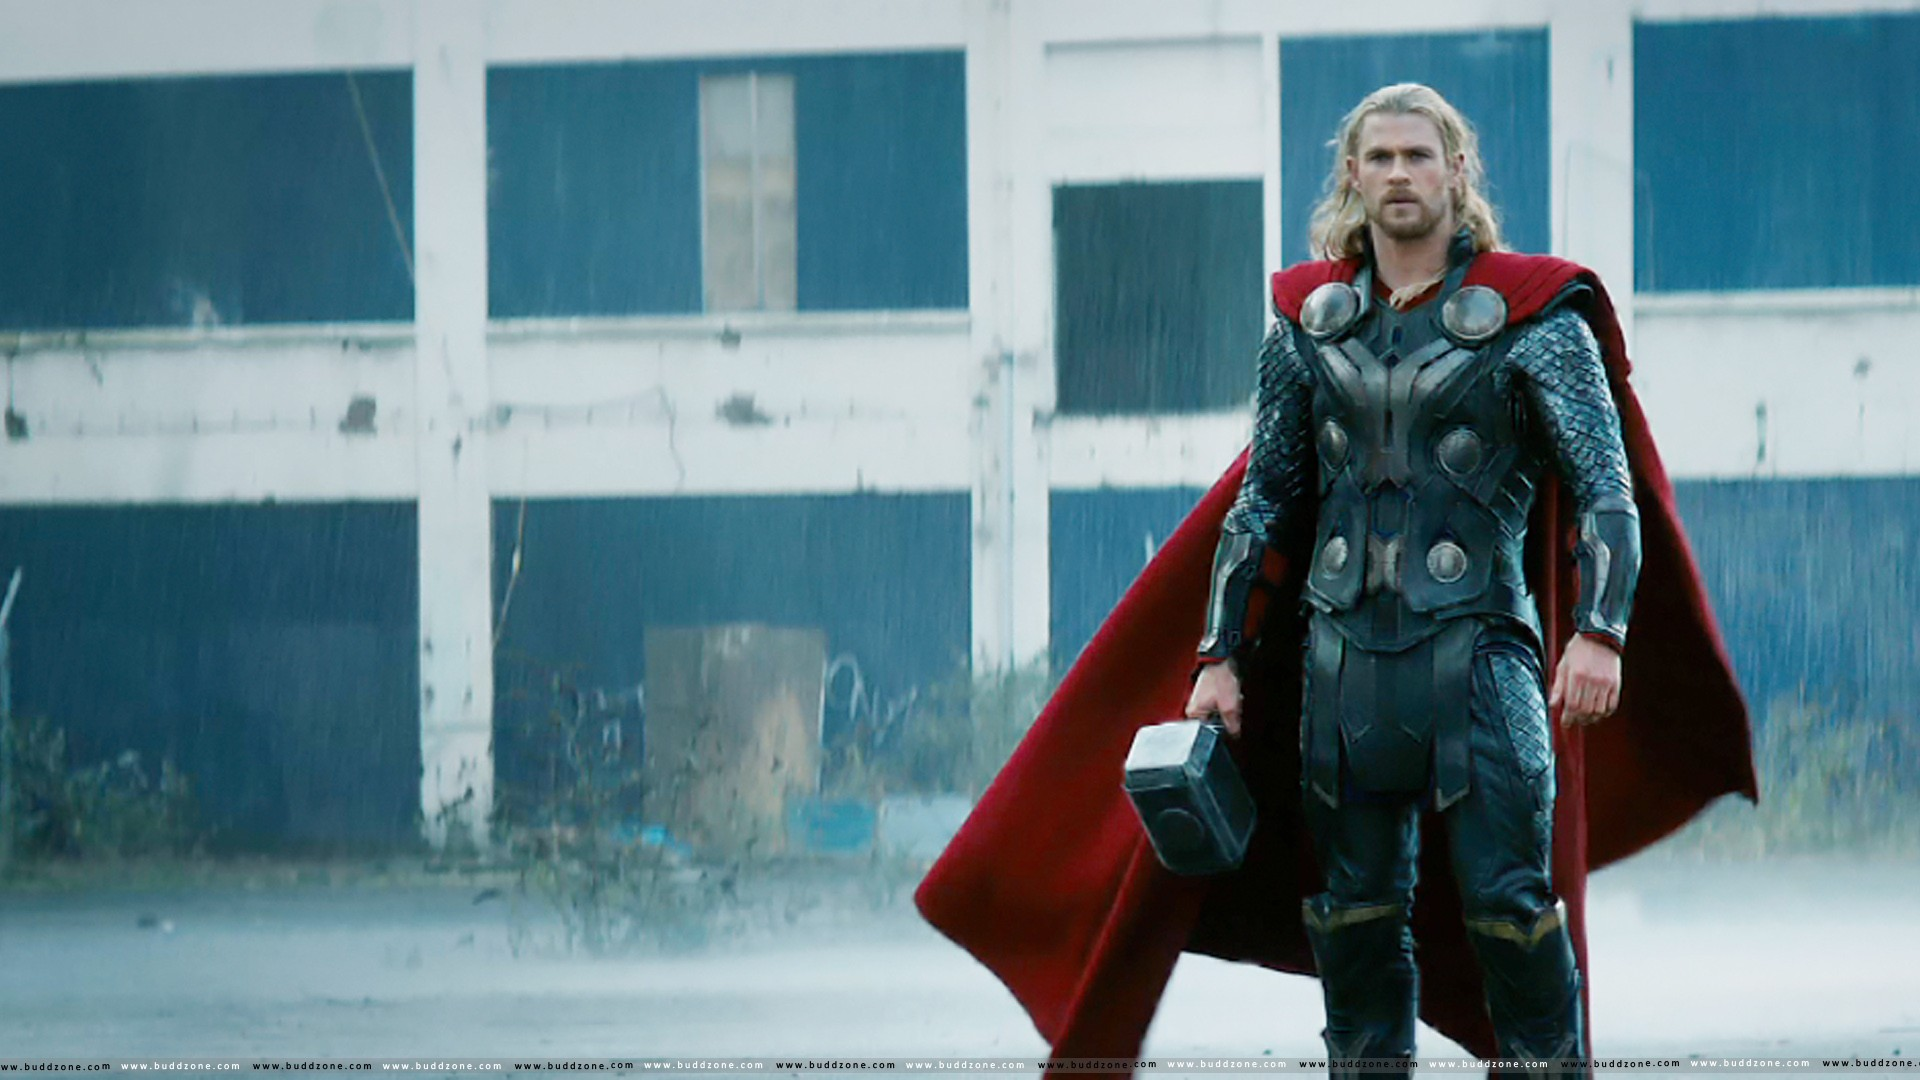 Thor Wallpaper Hd p Related Keywords  Suggestions Thor 1920x1080